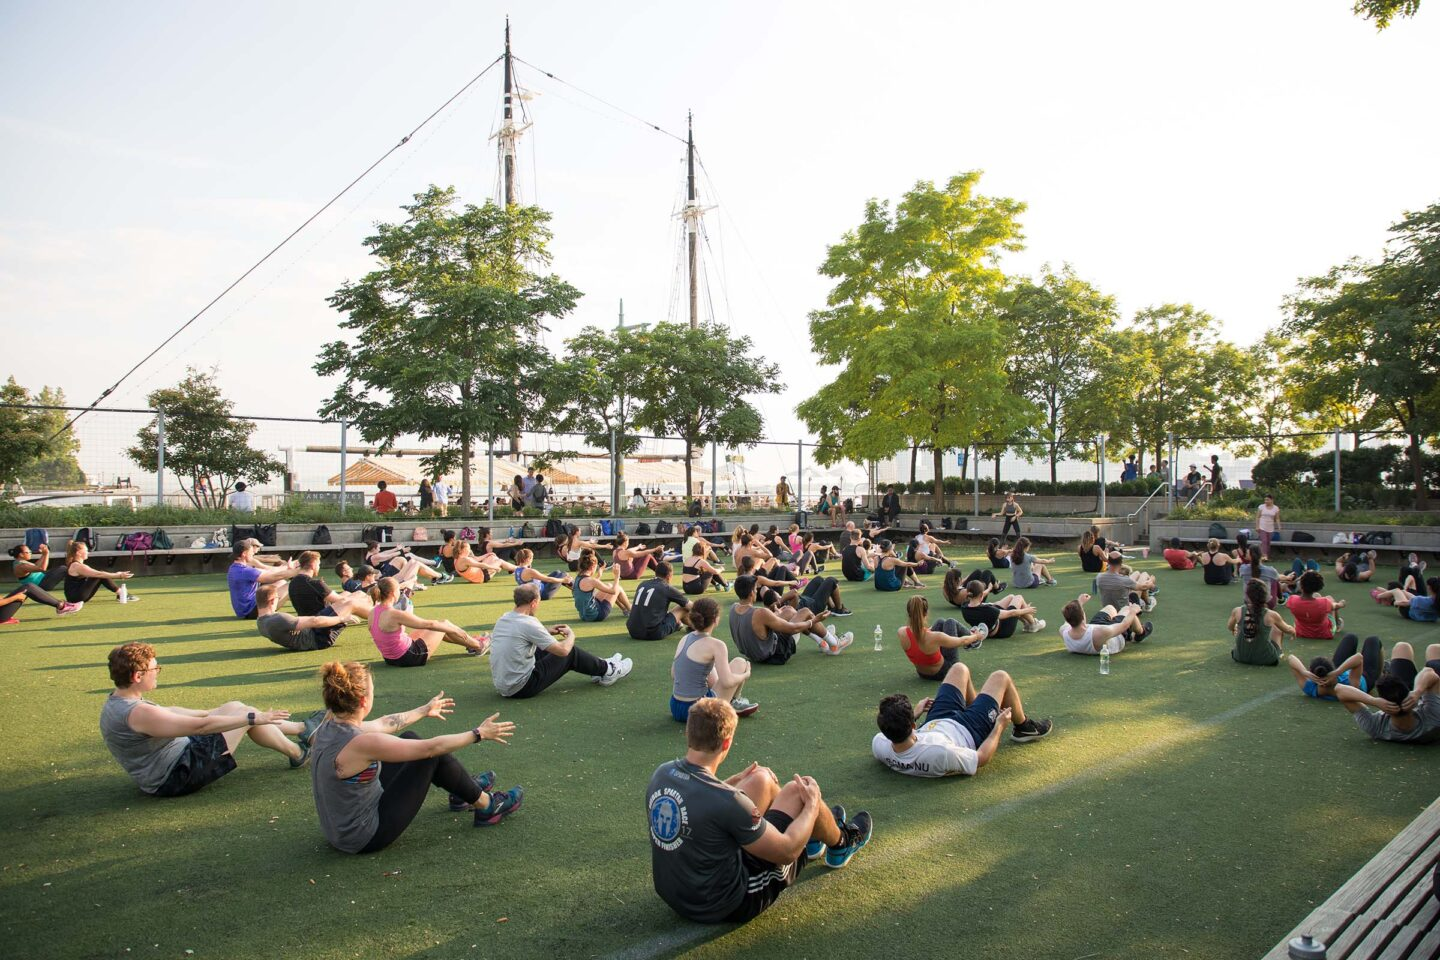 Participants at an exercise class practice crunches at Pier 25